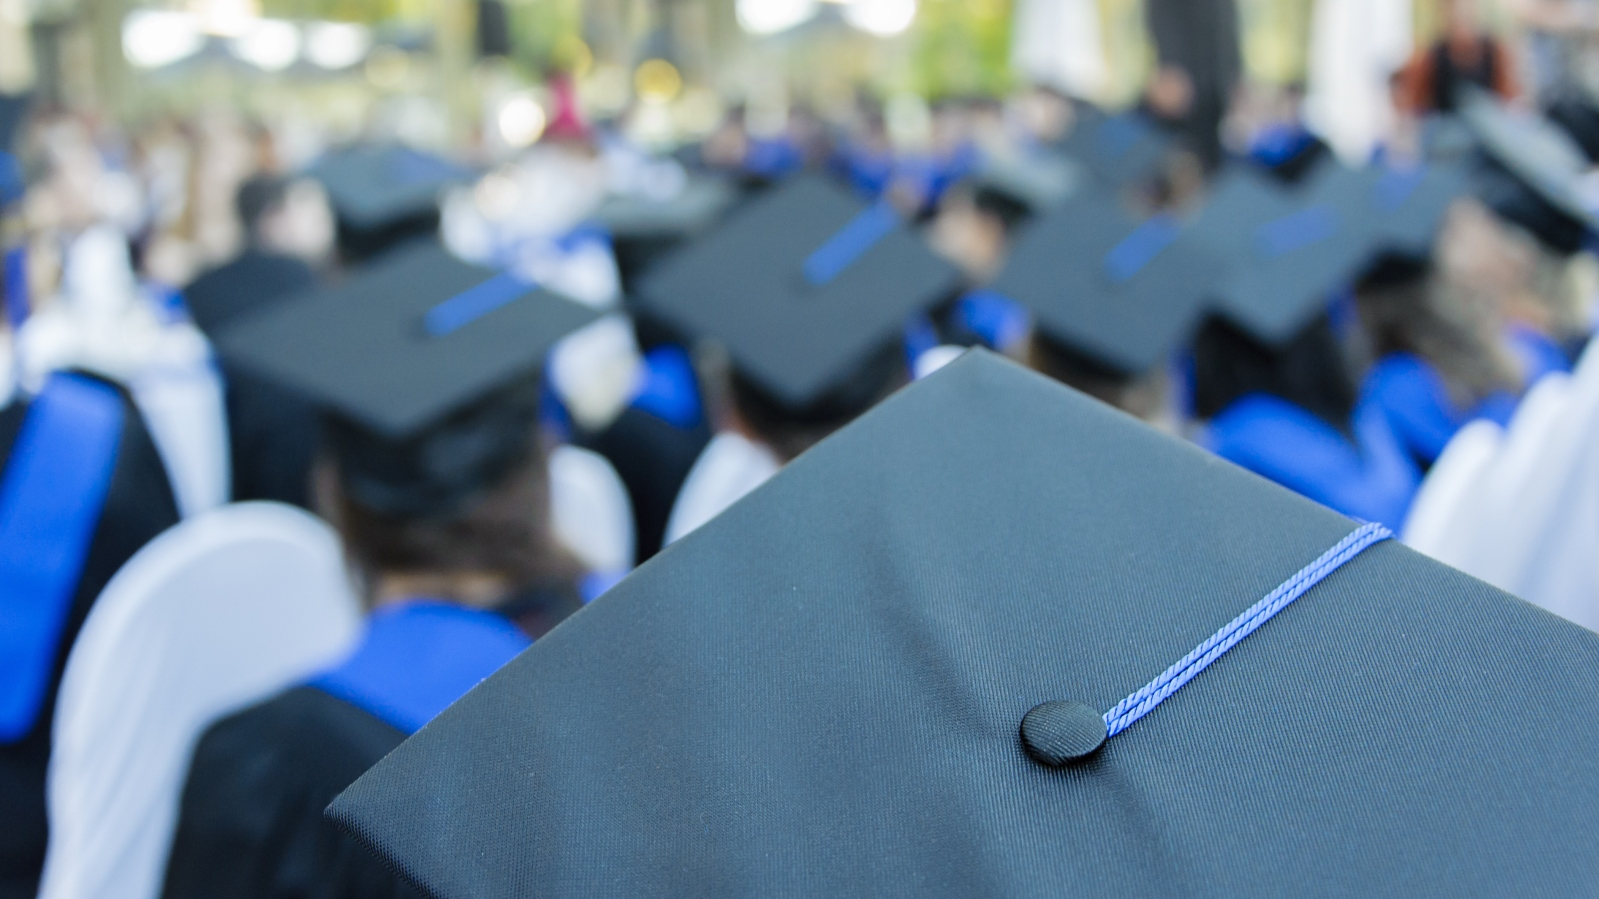 Israel ranks as world's third most educated country